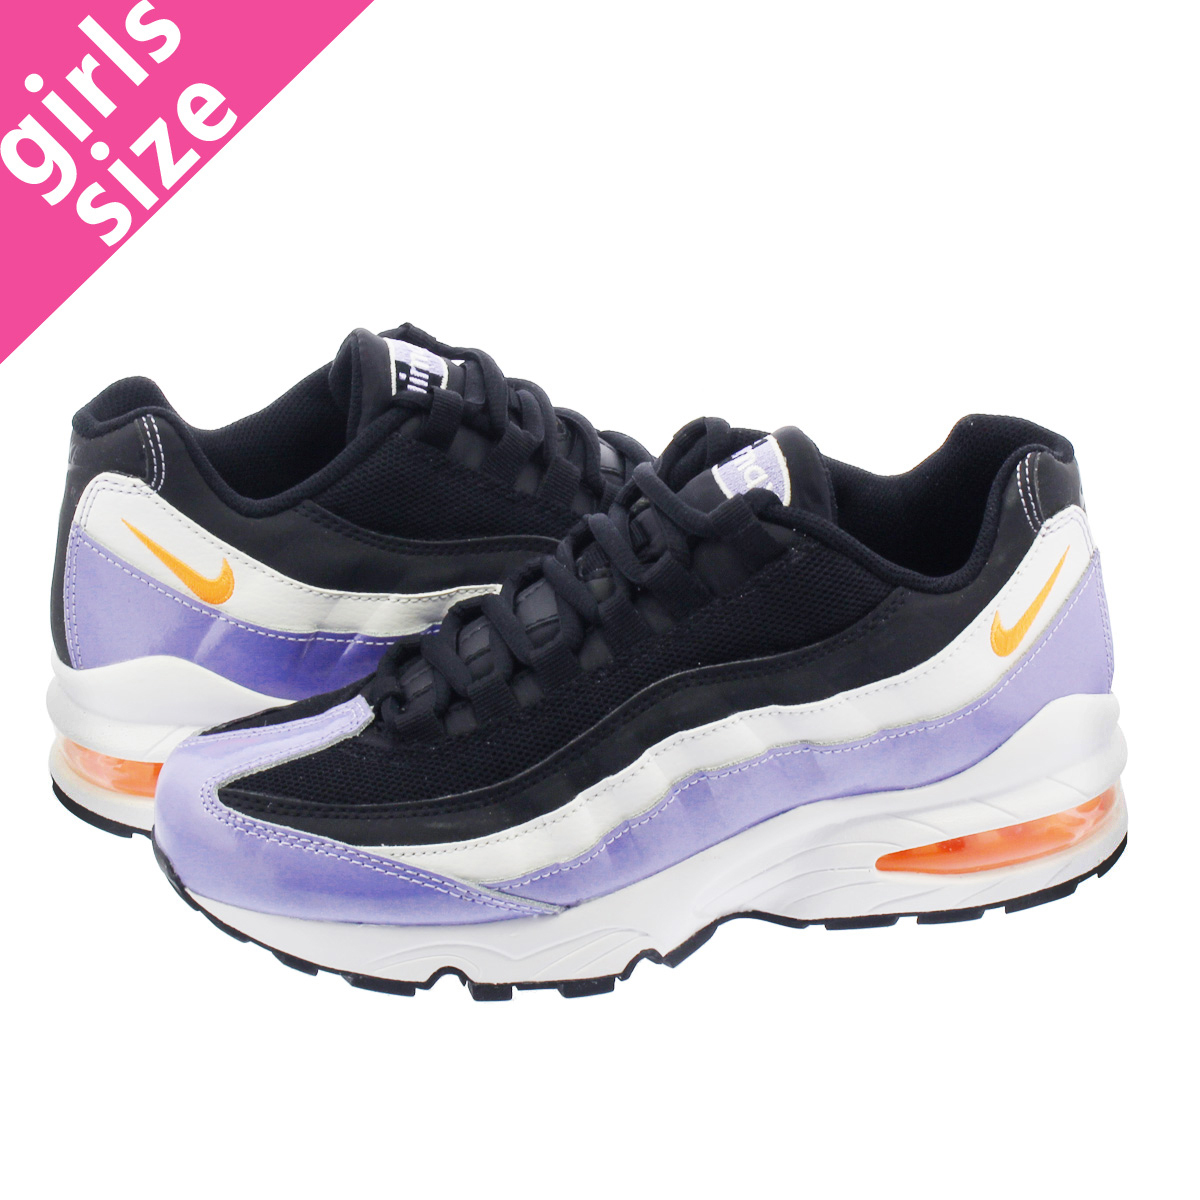 NIKE AIR MAX 95 GS Kie Ney AMAX 95 GS BLACK TWILIGHT PULSE WHITE TOTAL  ORANGE 310 3a3fcf29d